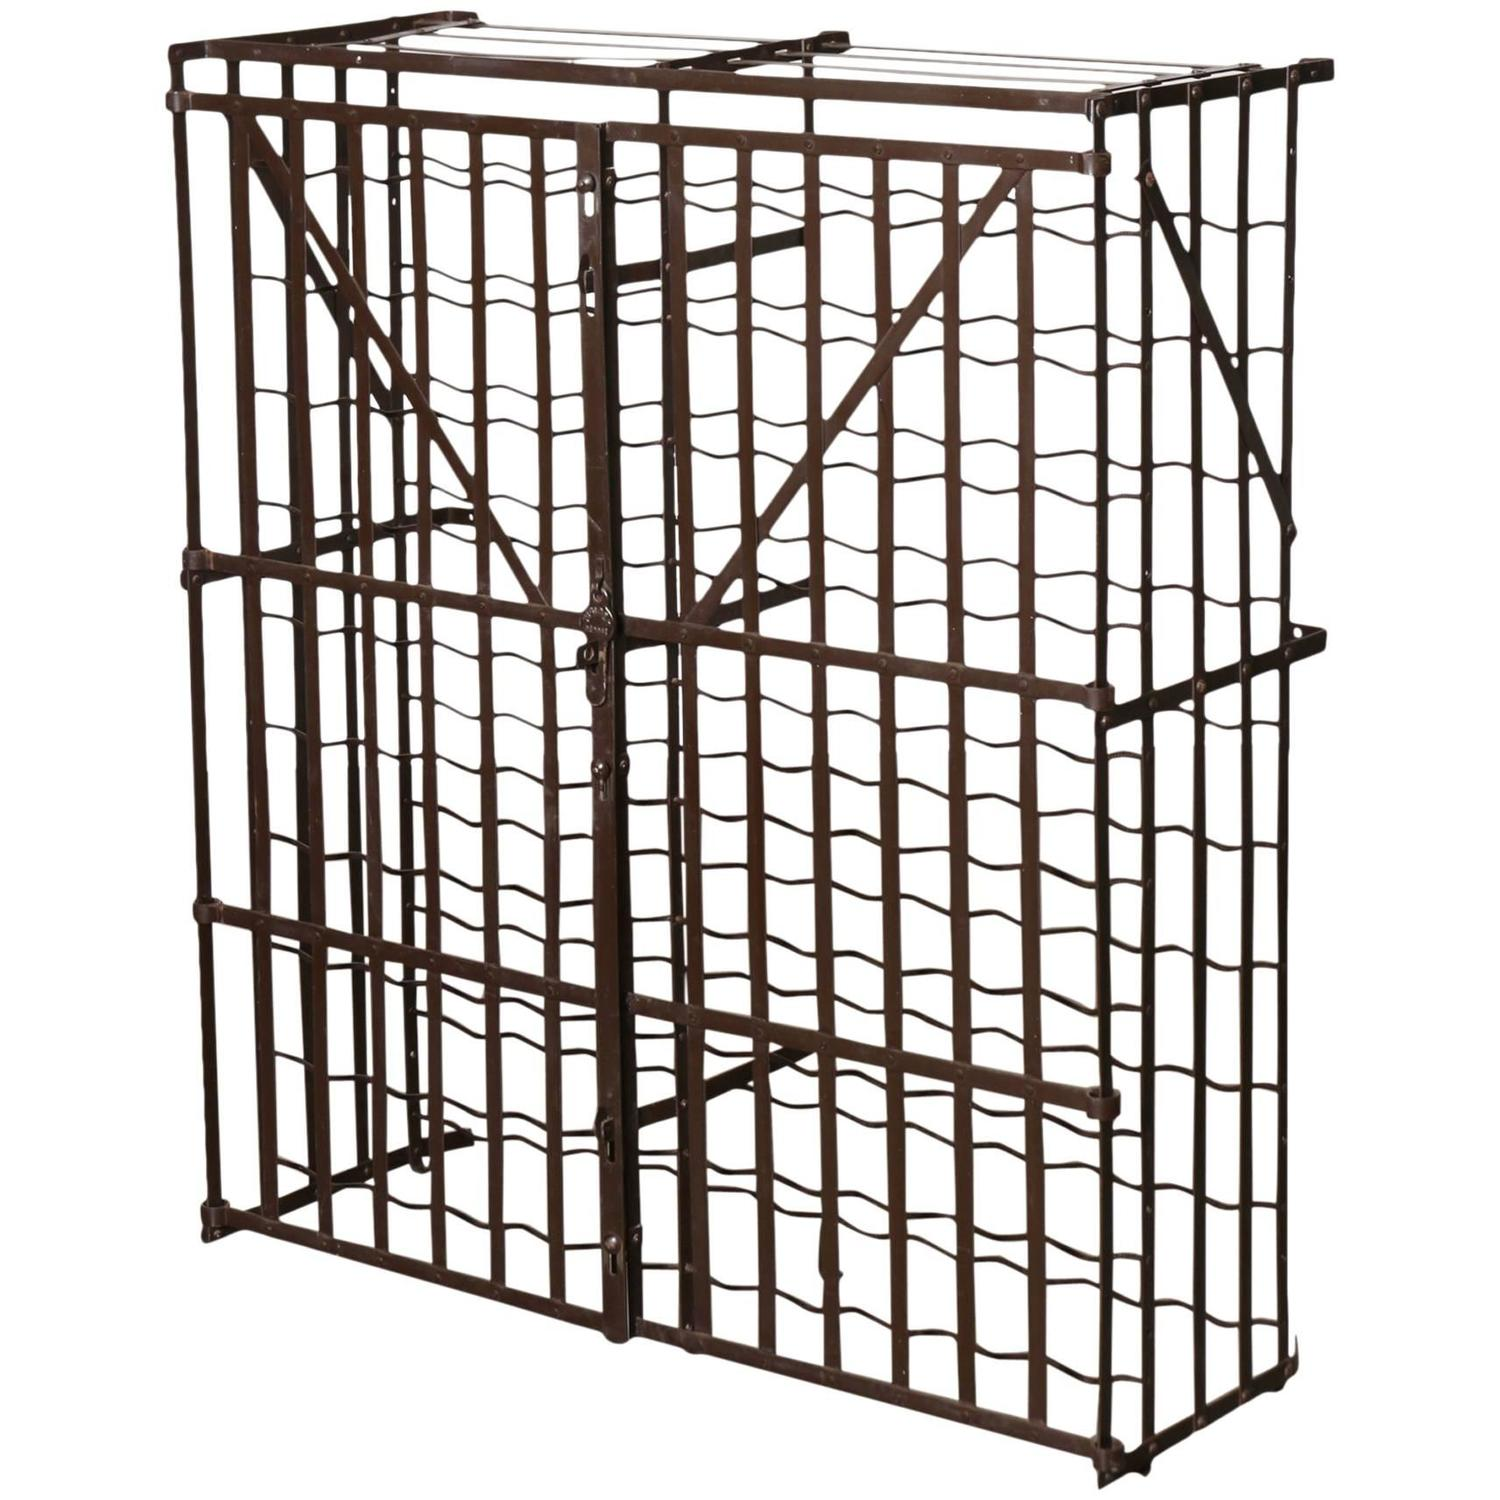 Commercial Grade Lockable Metal Wine Rack By Rigidex